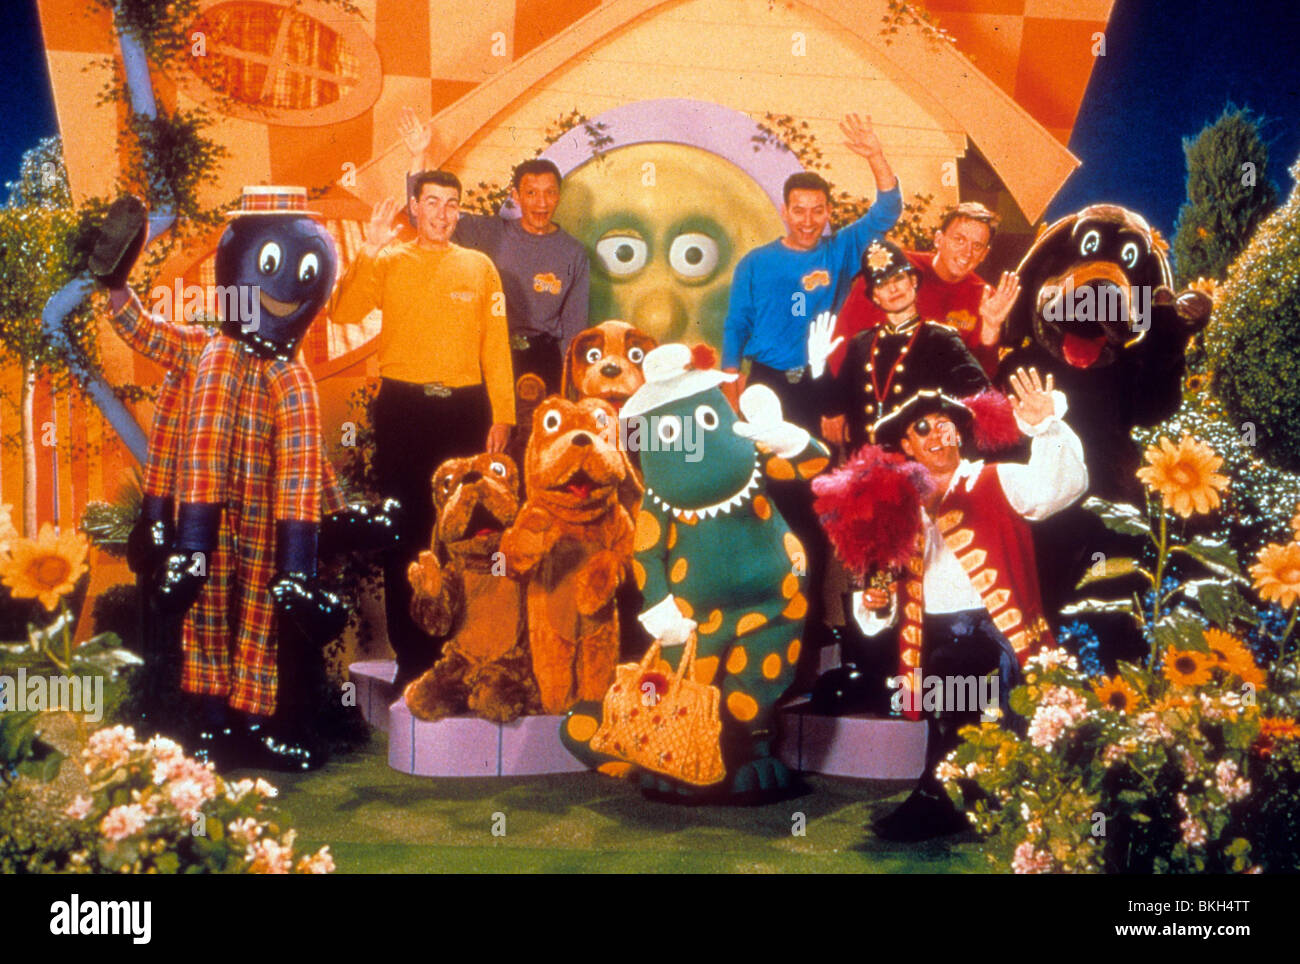 The Wiggles Movie 1997 Stock Photo 29265848 Alamy